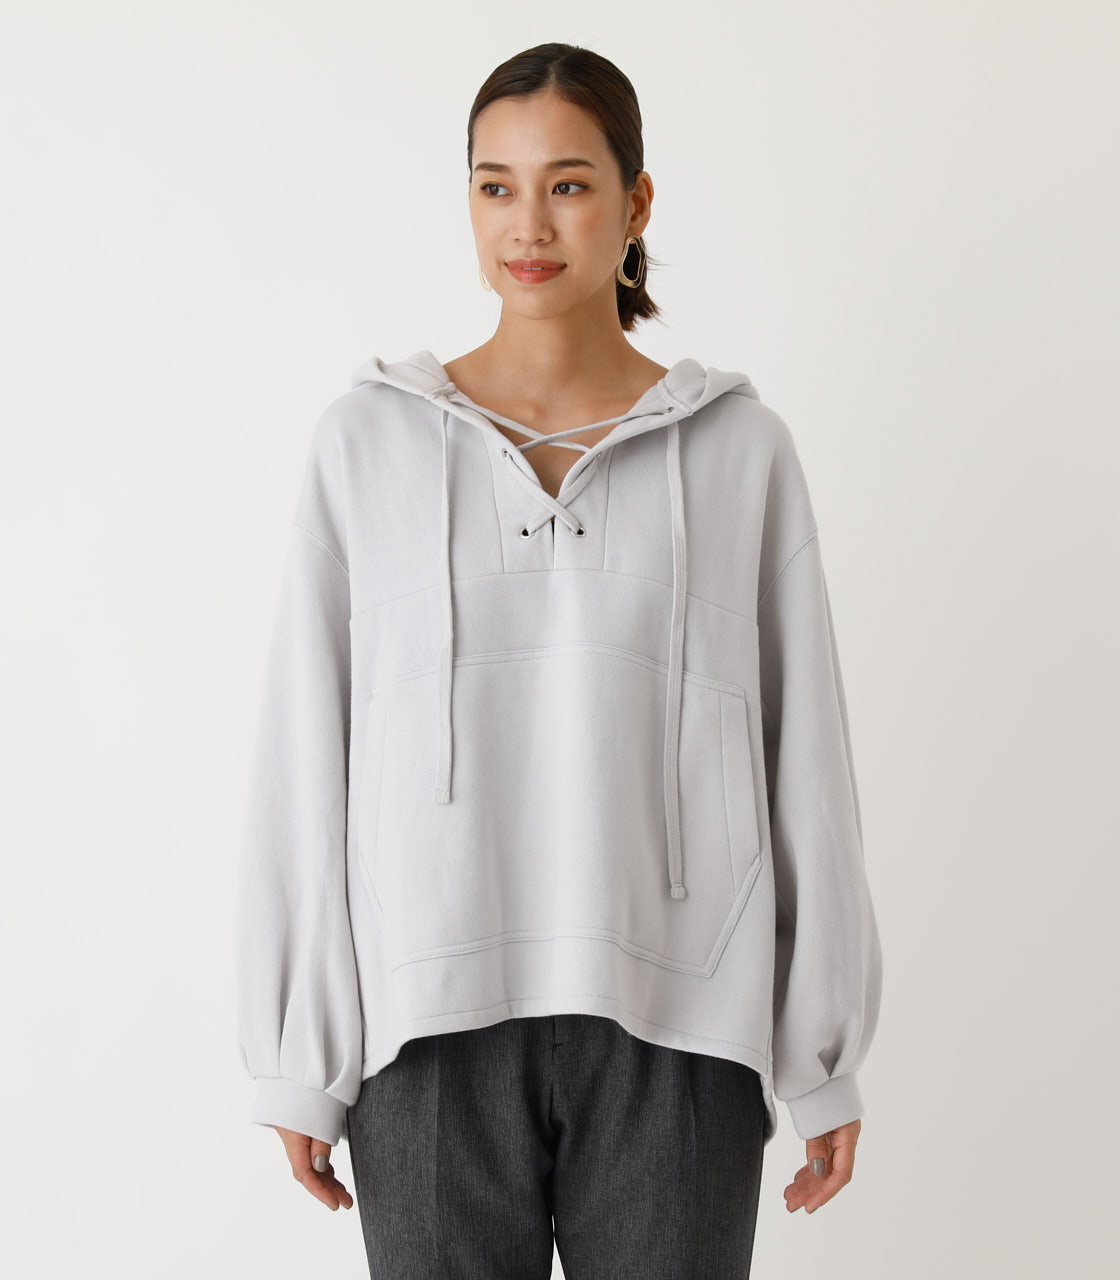 LACE-UP LOOSE HOODIE/レースアップルーズフーディ 詳細画像 L/GRY 4